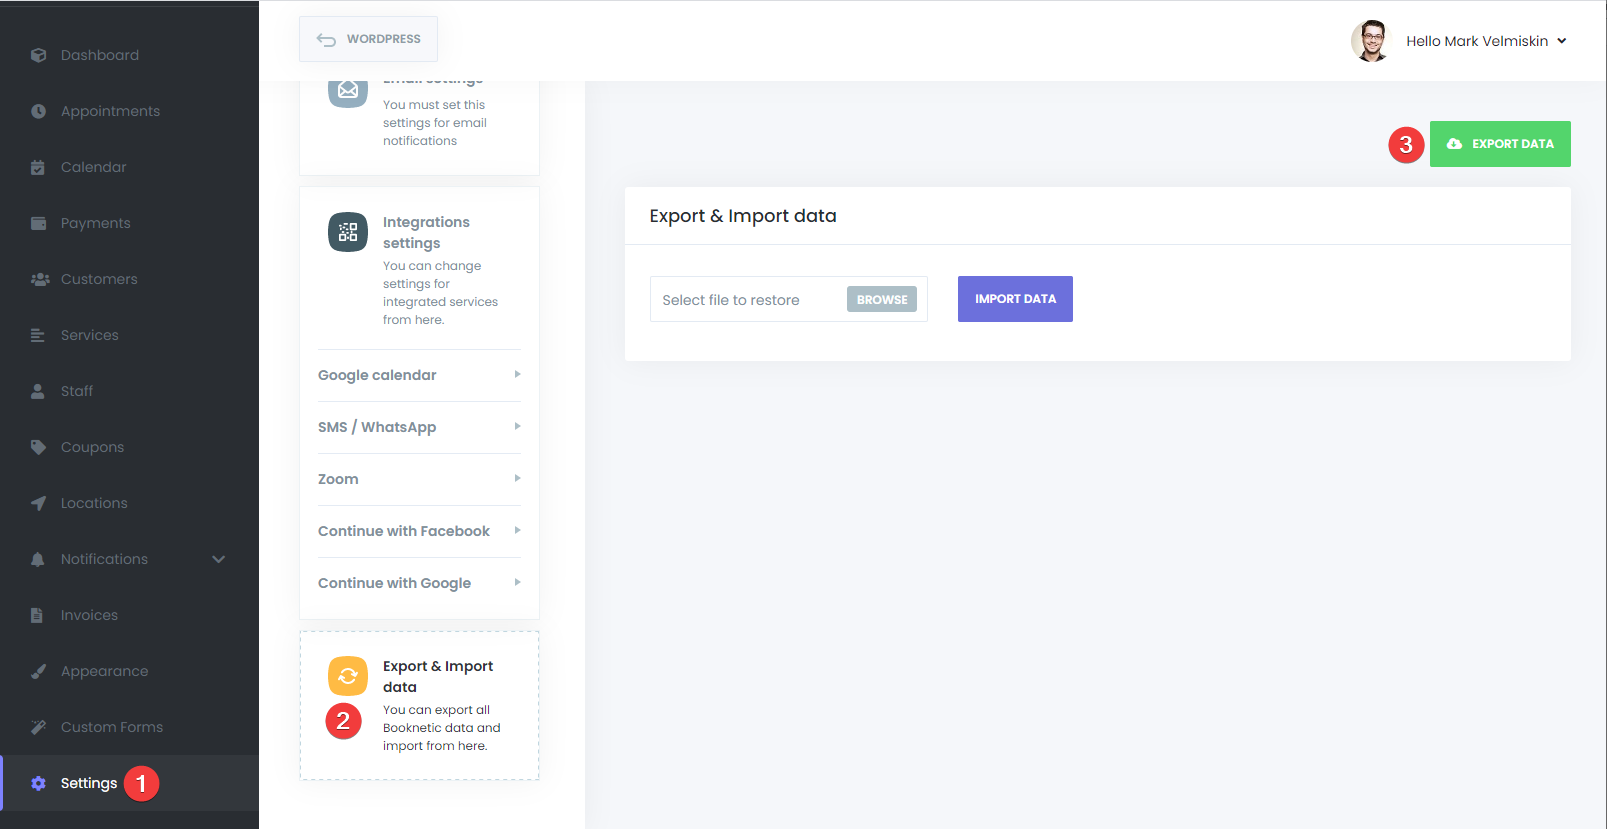 Updating Booknetic. Multi-purpose Appointment Booking Plugin For WordPress.